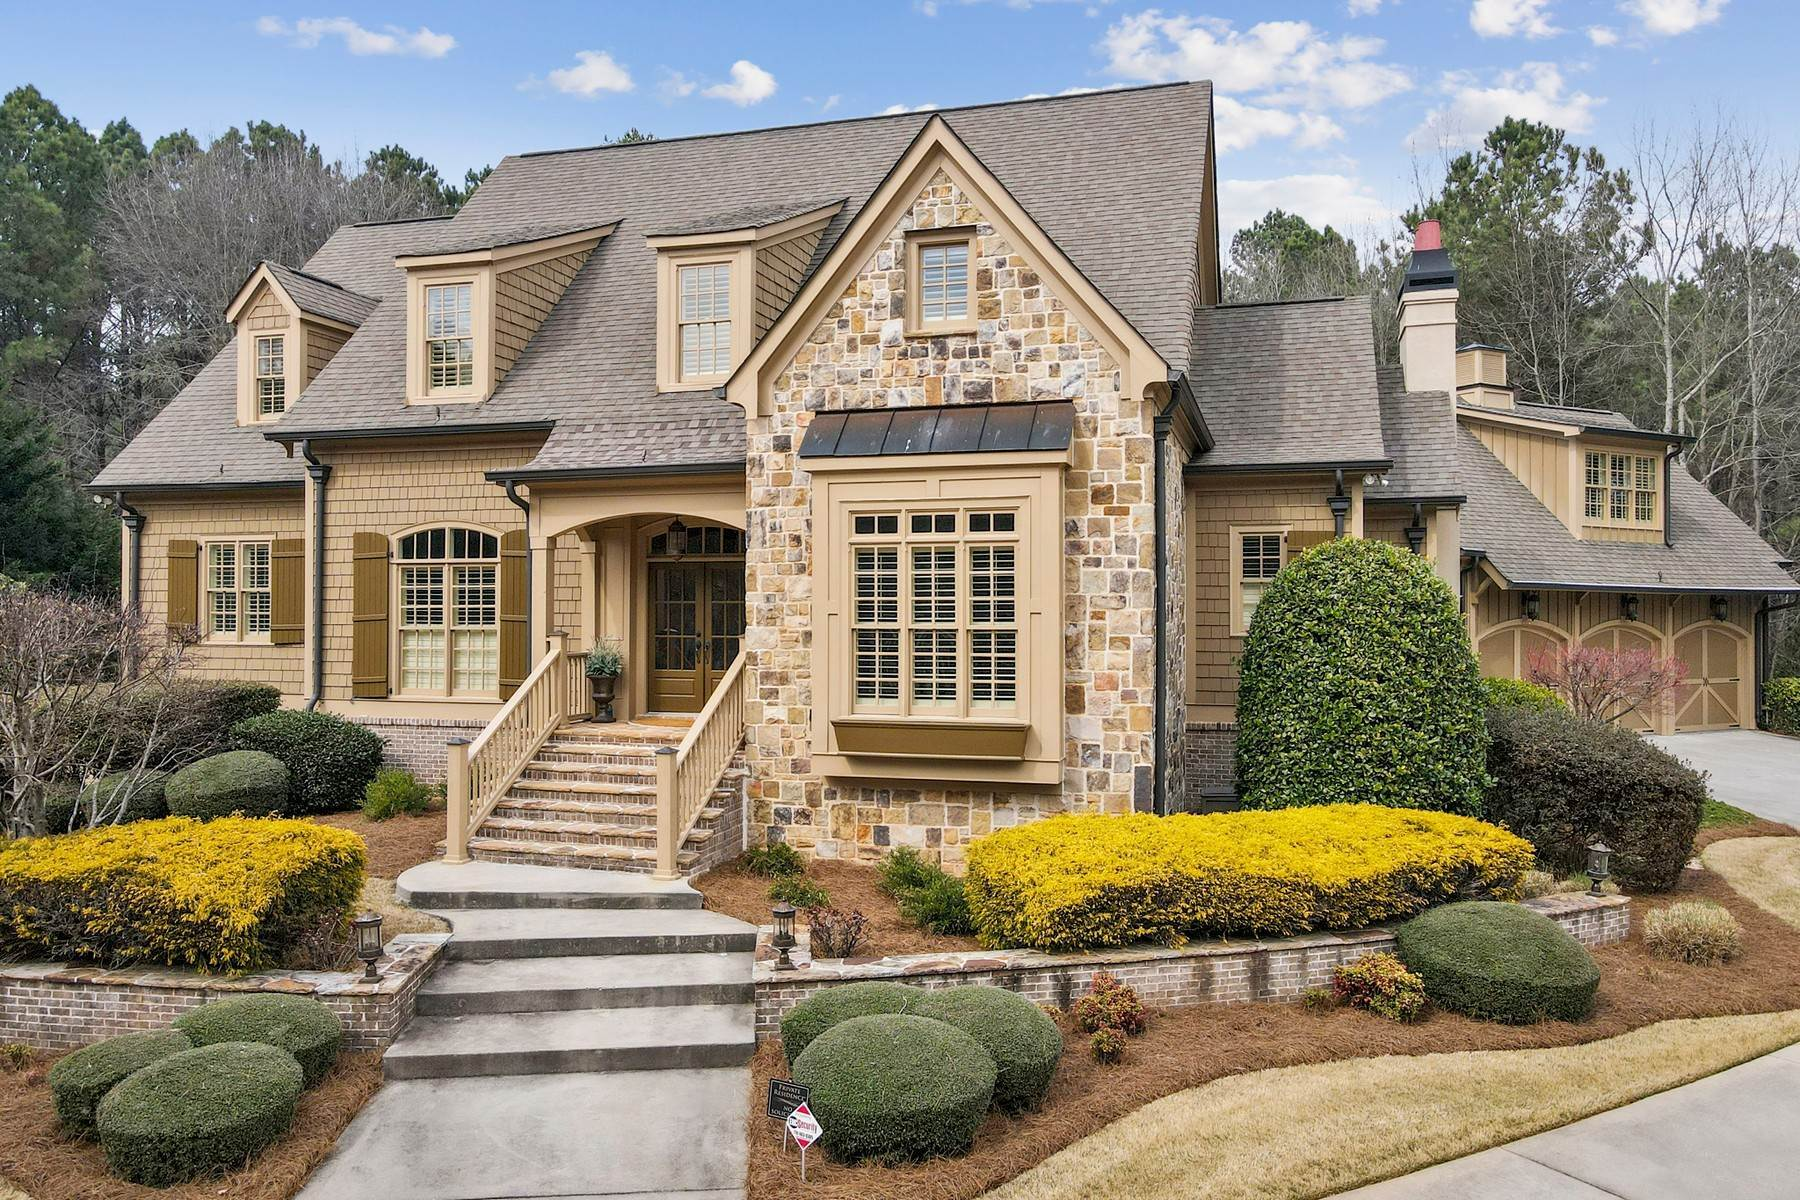 Single Family Homes for Active at Exceptional Newhaven Home 100 Newhaven Drive Fayetteville, Georgia 30215 United States